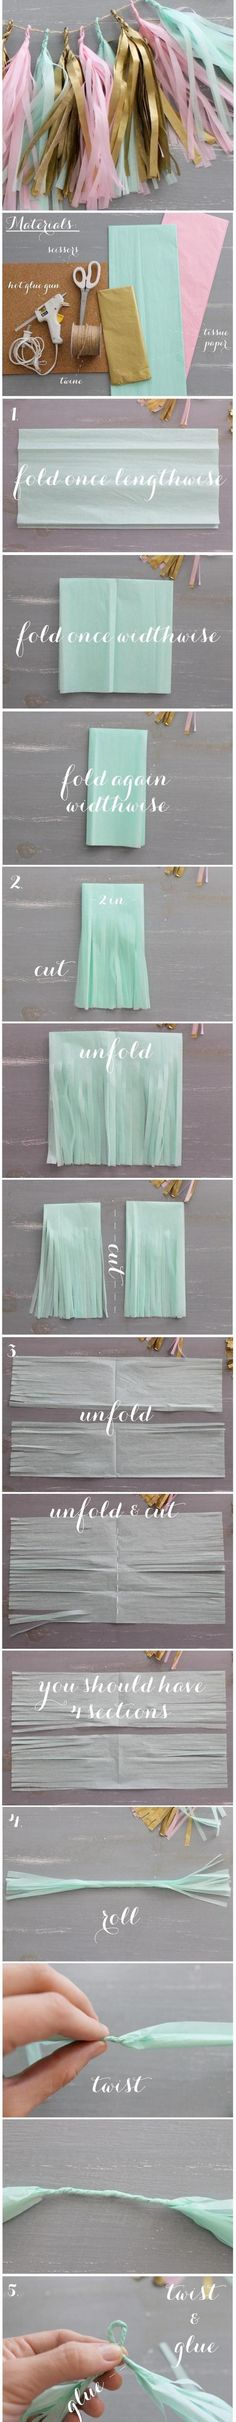 how to make tassel garland // perfect for a little added room decor!